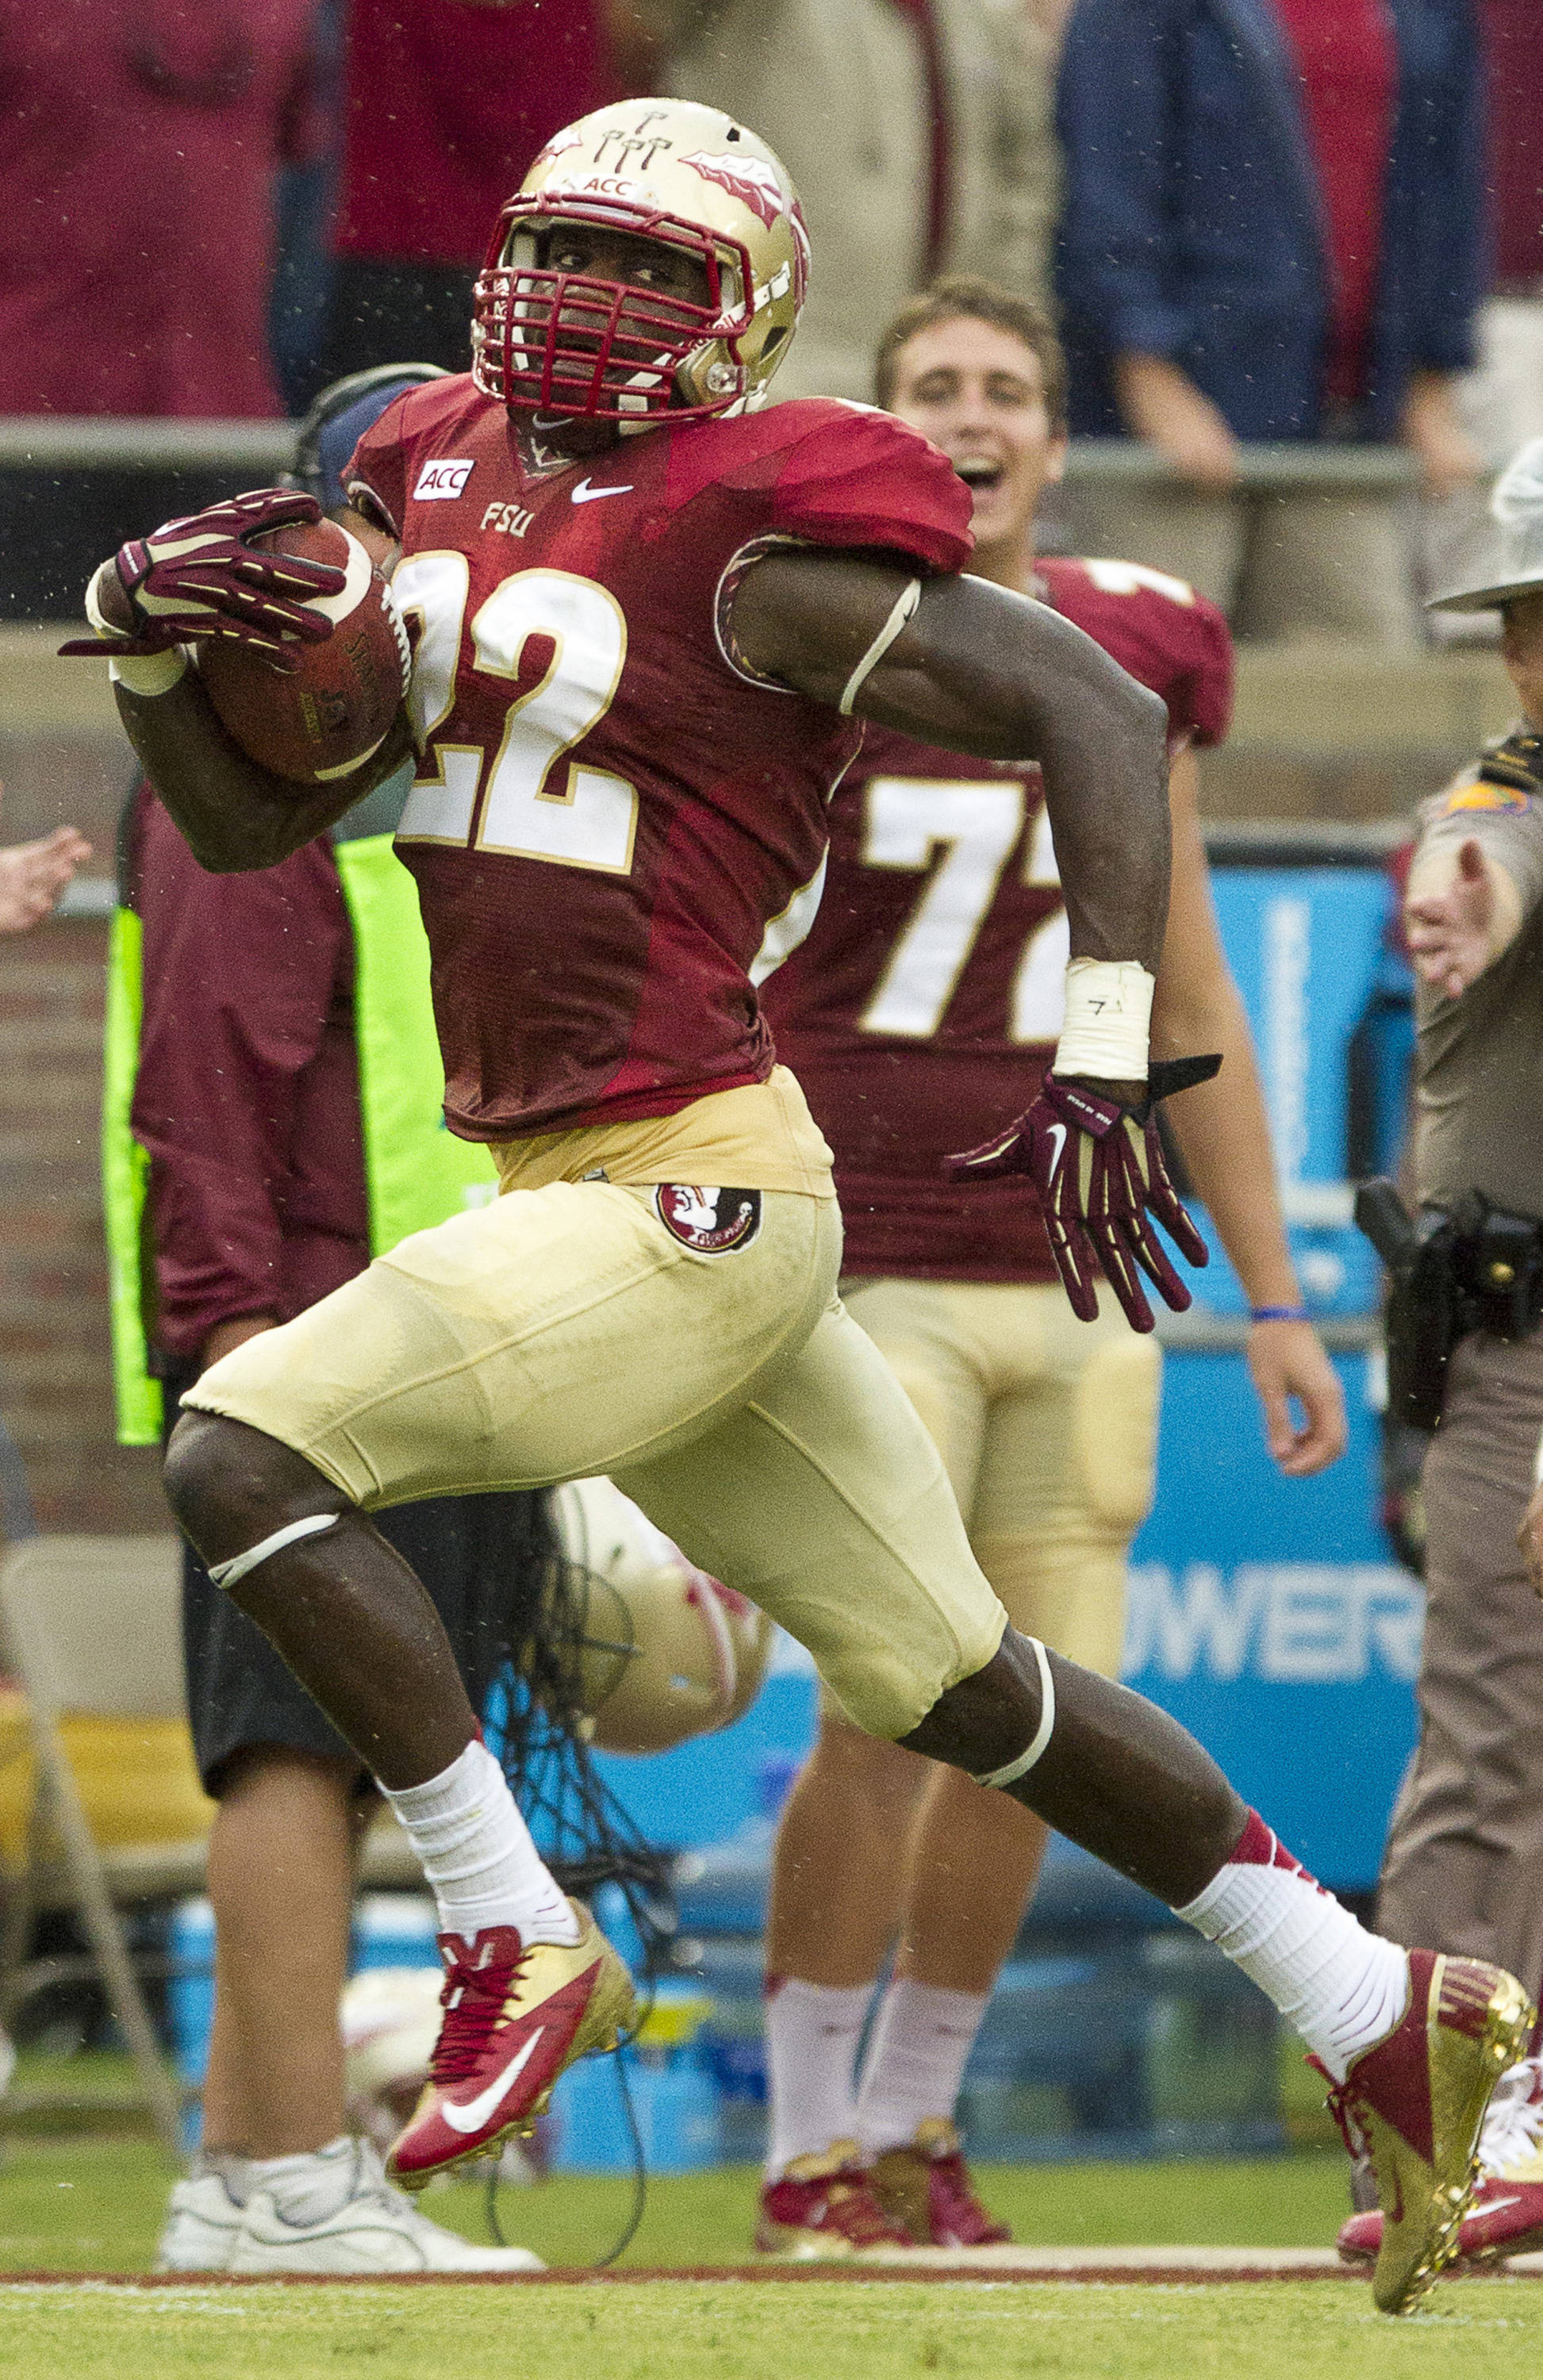 Telvin Smith (22) runs with the ball after an interception during FSU Football's 54-6 win over Bethune-Cookman on September 21, 2013 in Tallahassee, Fla